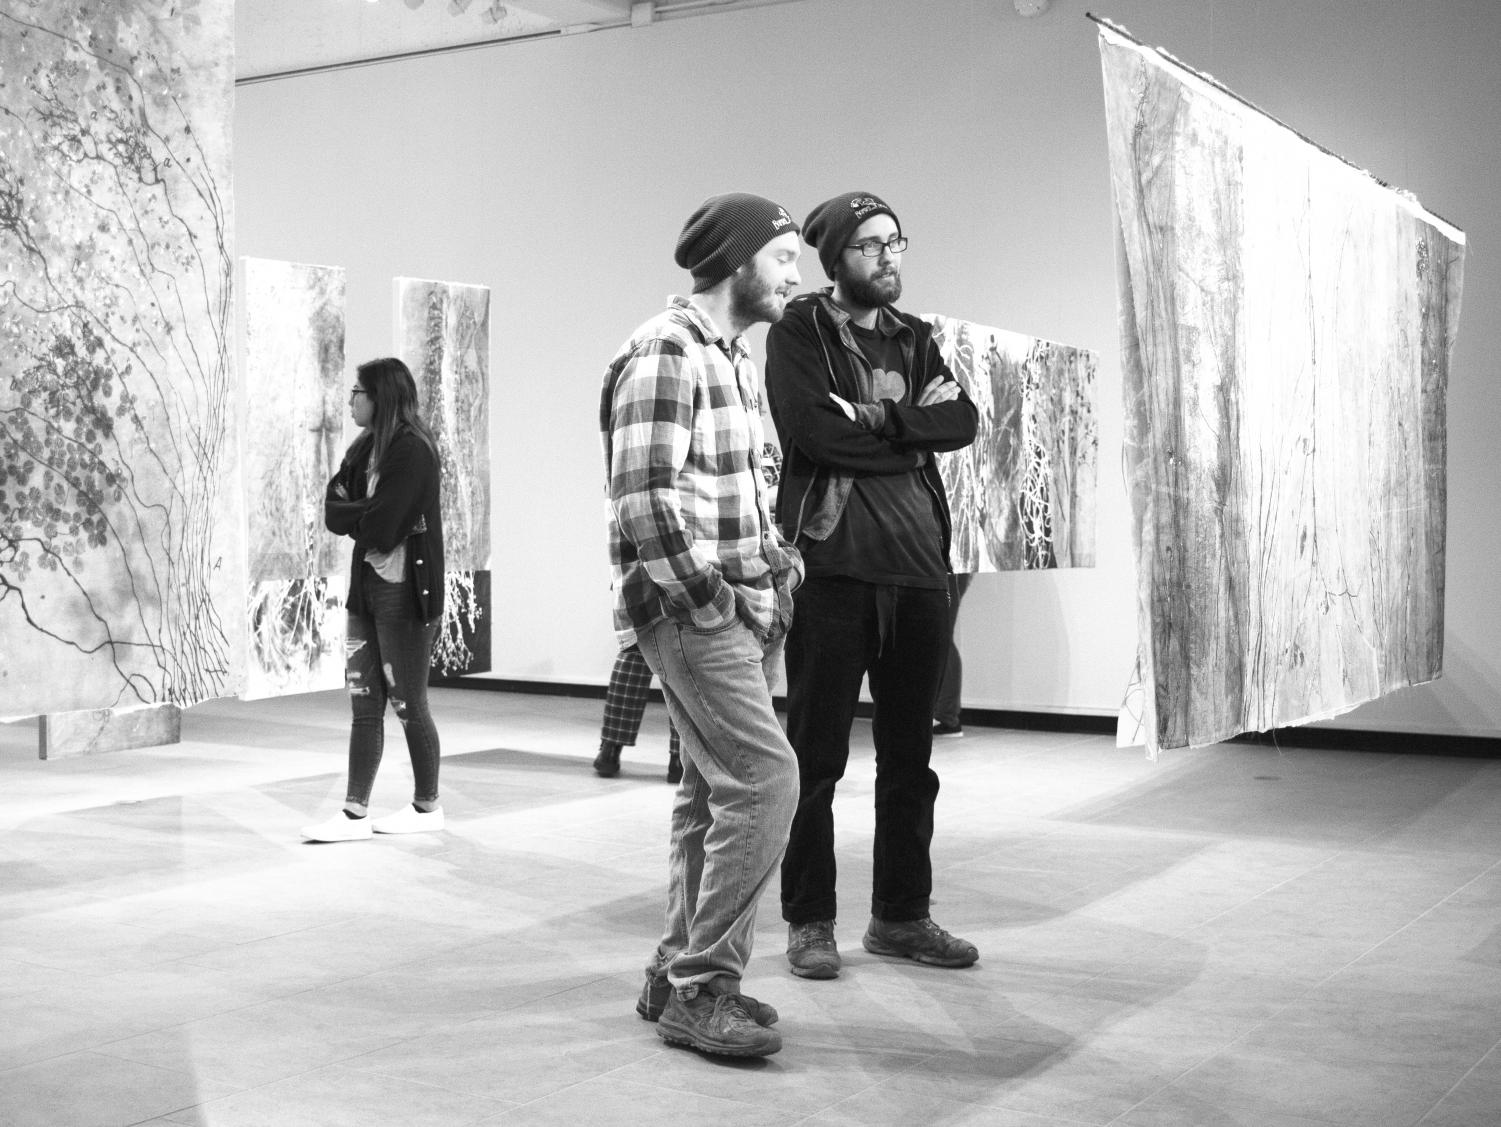 Students view Hunder's exhibition at the gallery's reception last Thursday night.